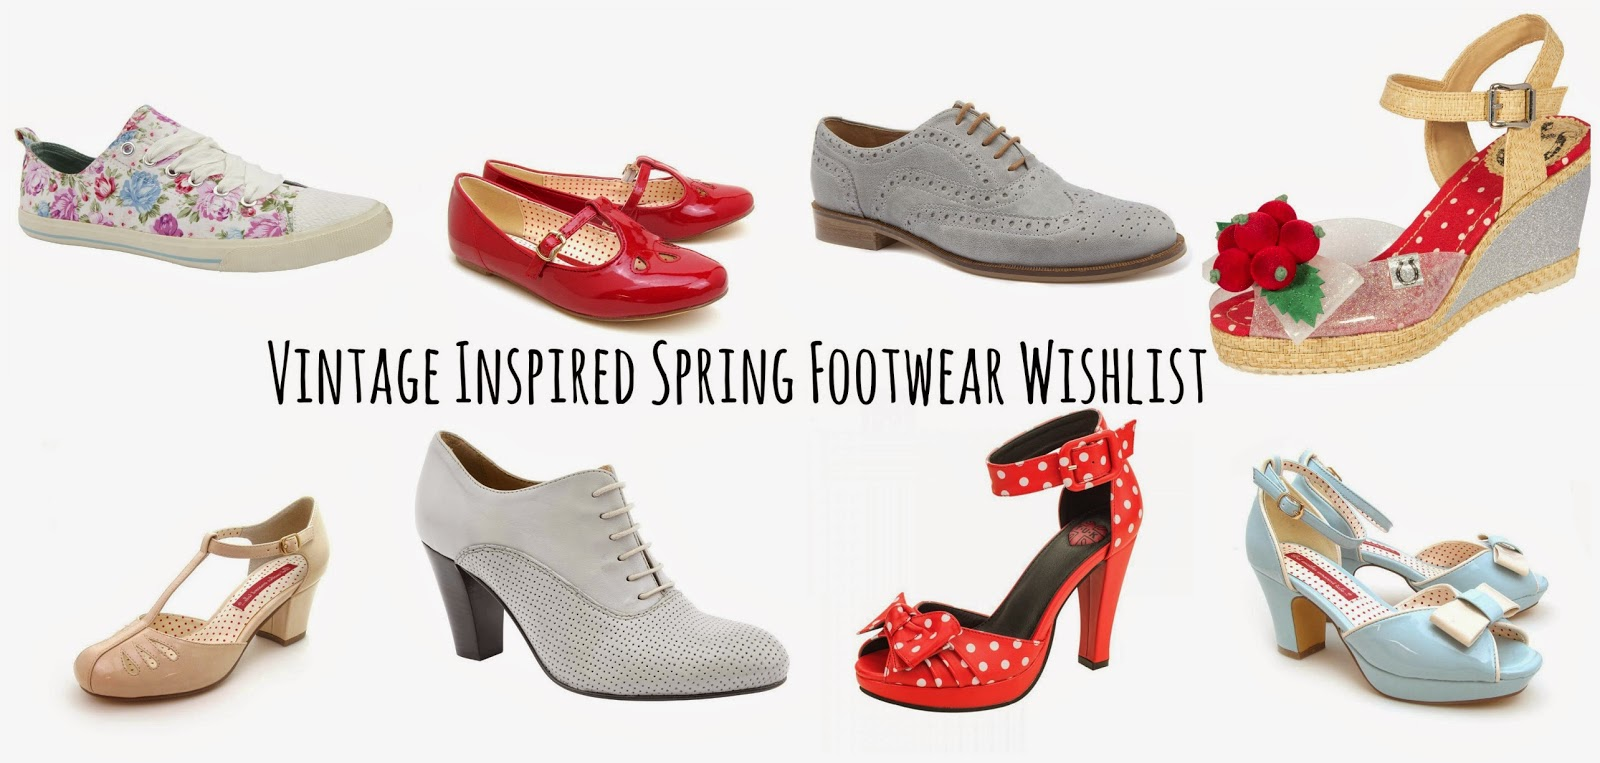 Vintage Inspired Spring Footwear Wishlist